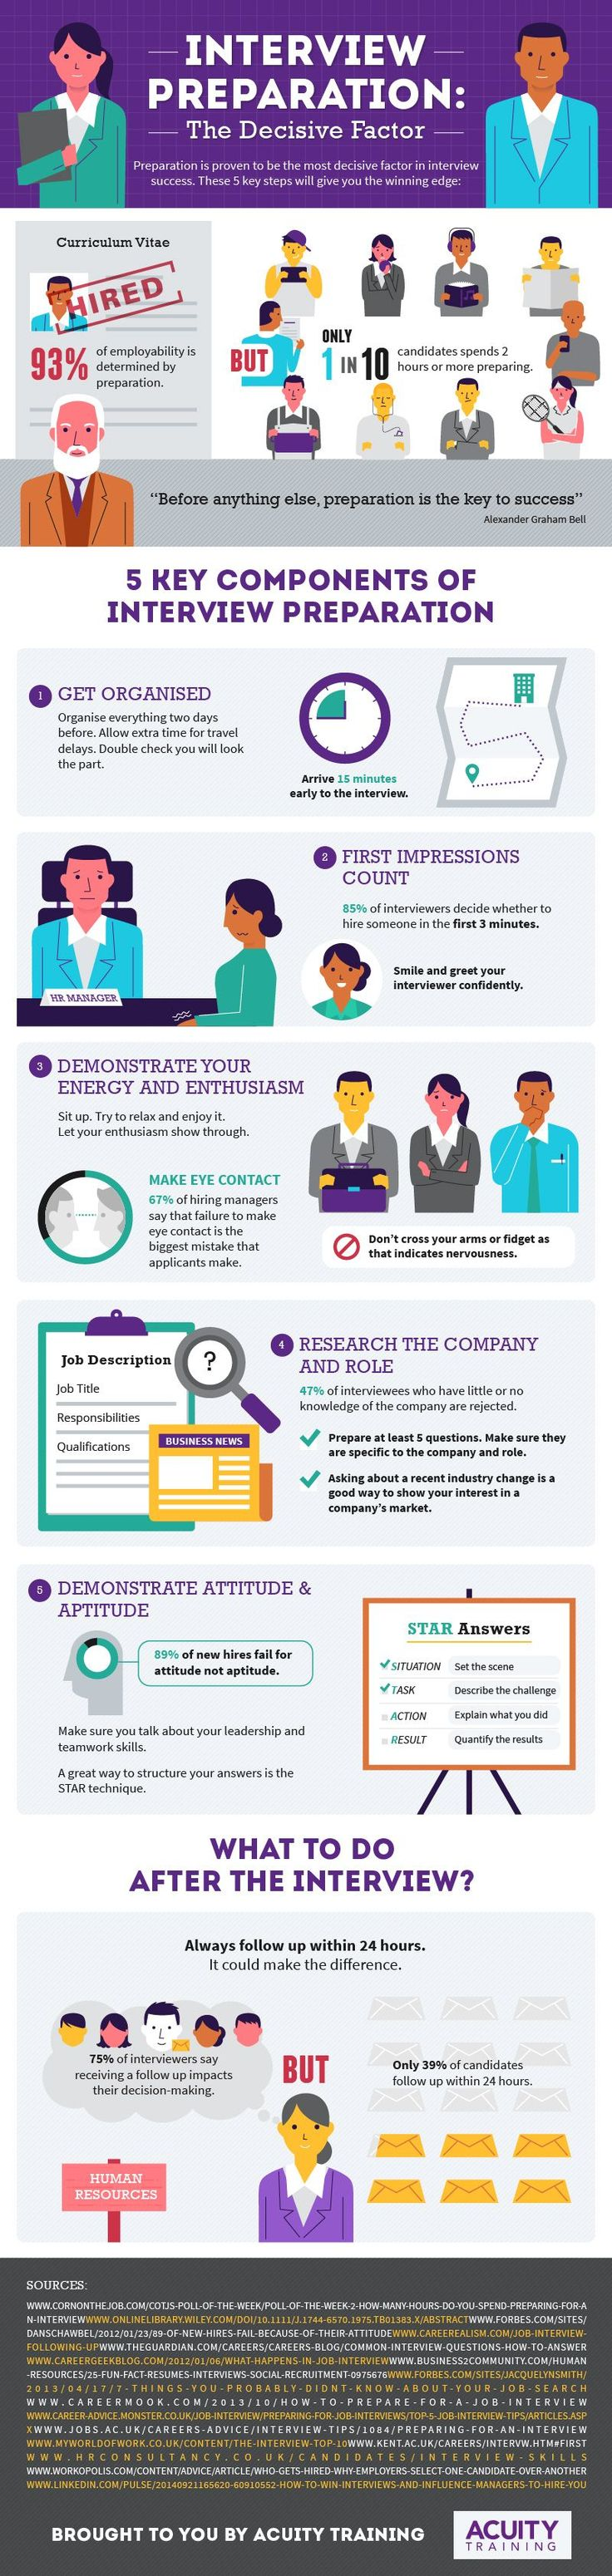 best ideas about job interviews job interview how to help kids understand what it means to have a job